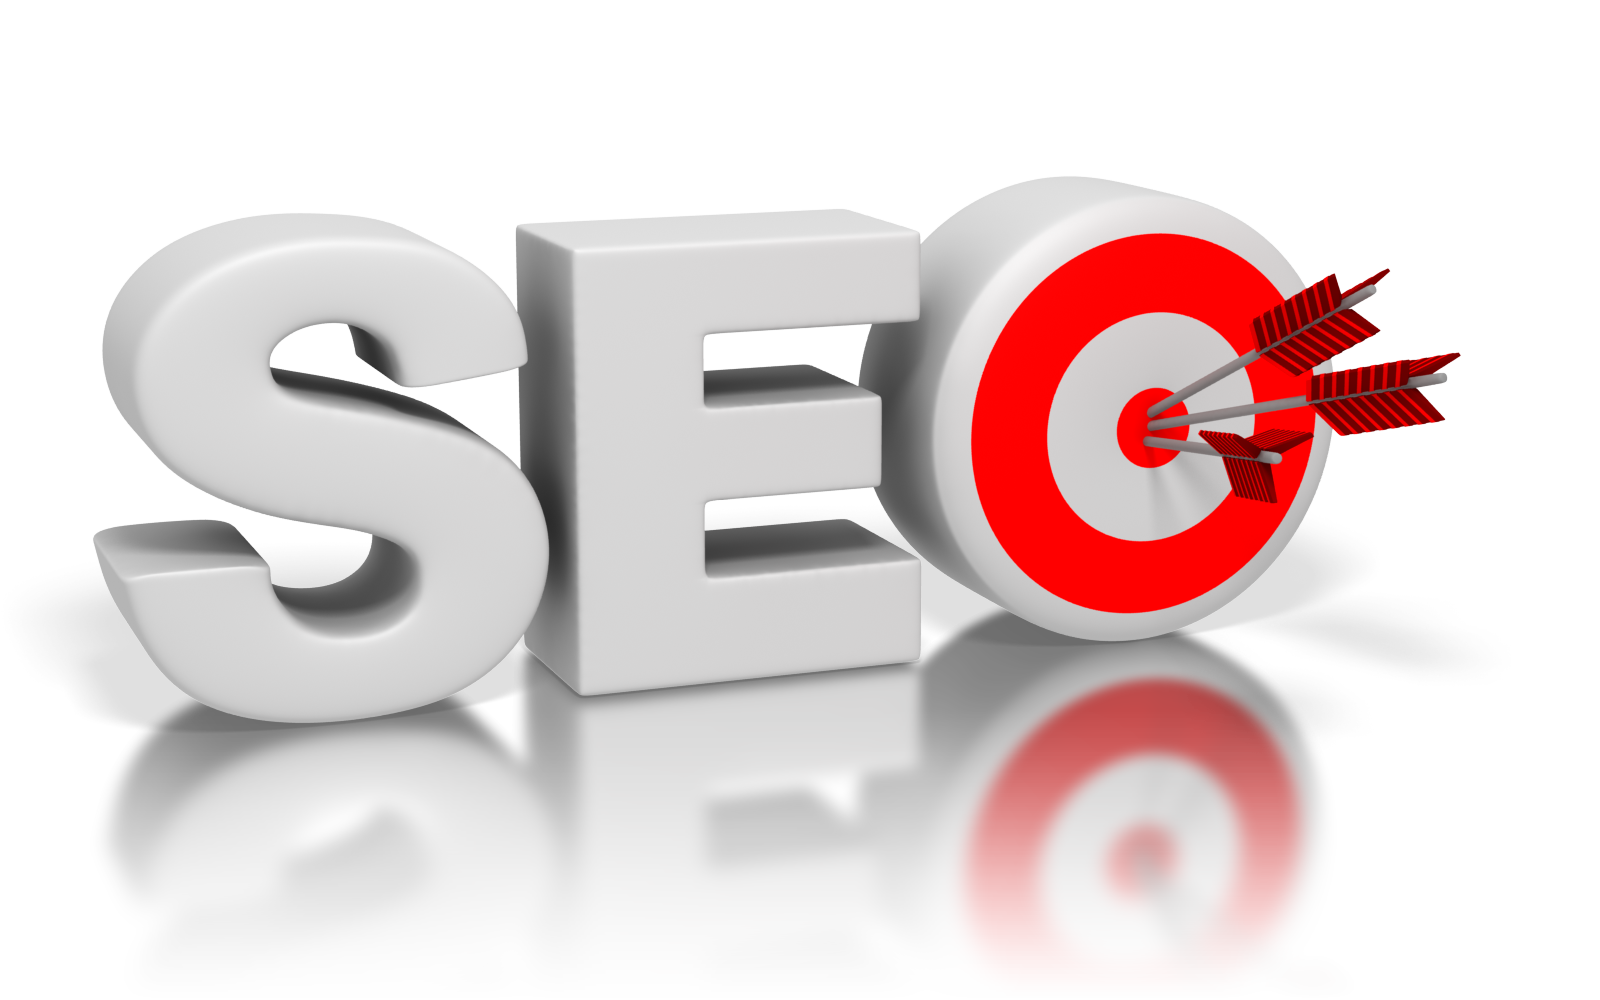 SEO Beaumont TX, SEO Port Arthur, SEO Southeast Texas, SETX SEO, Search Engine Optimization Beaumont TX